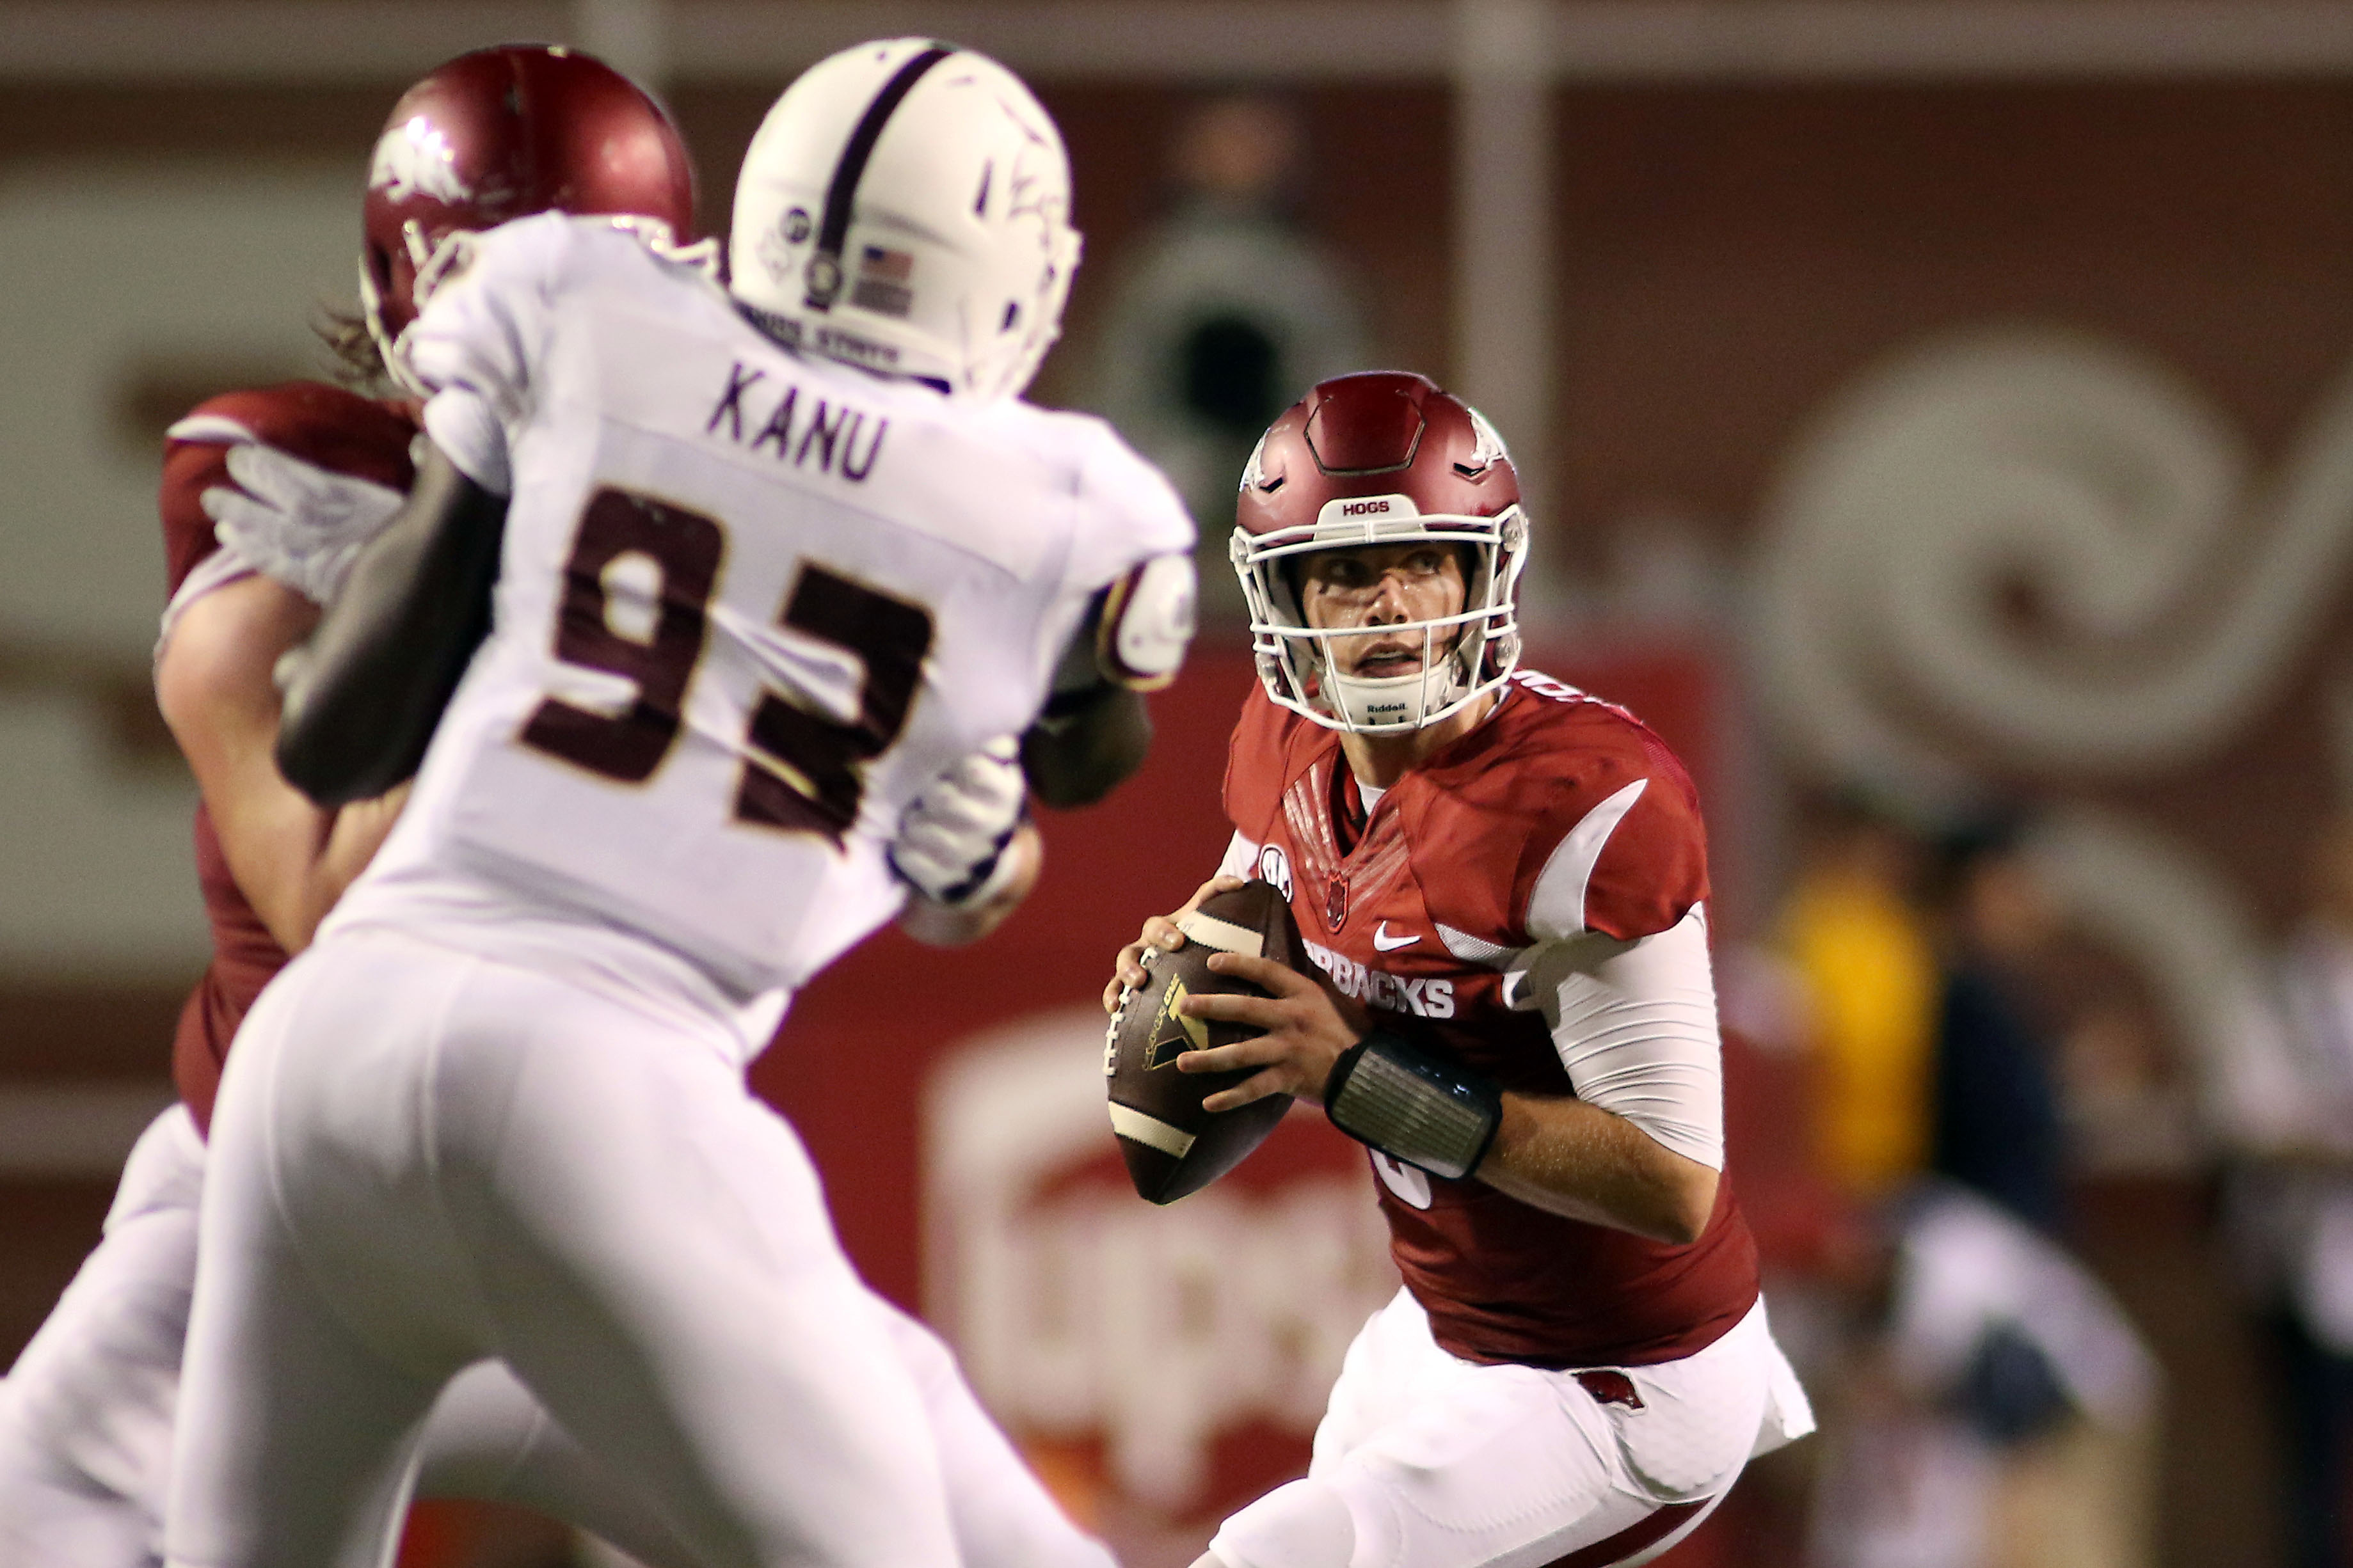 Arkansas' Austin Allen, right, looks to pass the ball during the third quarter of an NCAA college football game against Texas State Saturday, Sept. 17, 2016 in Fayetteville, Ark. Arkansas beat Texas State, 42-3.(AP Photo/Samantha Baker)